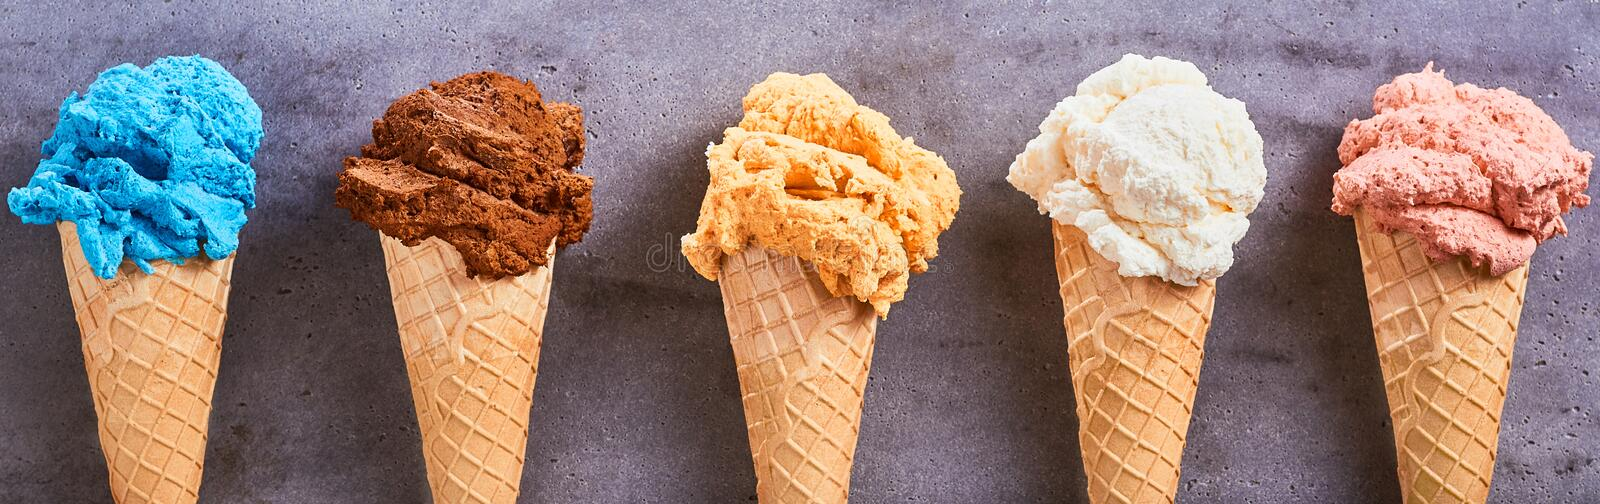 Panorama banner with assorted artisanal ice-creams stock photo